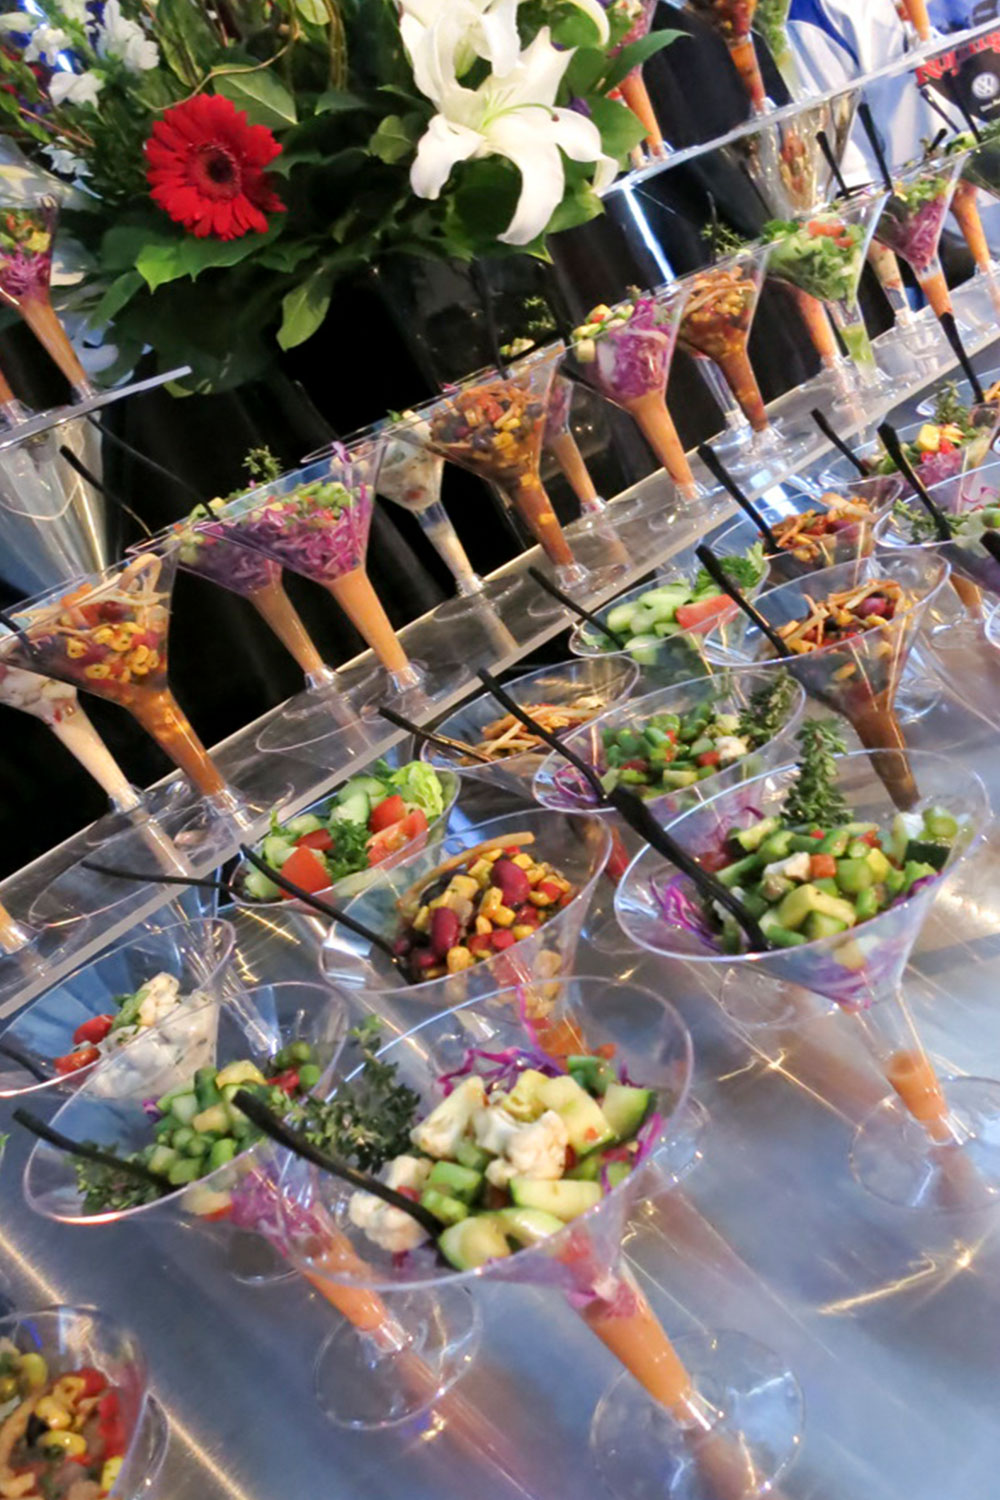 toast-rolling-stone-catering-large-events-healthy-delicious-10twelve.jpg